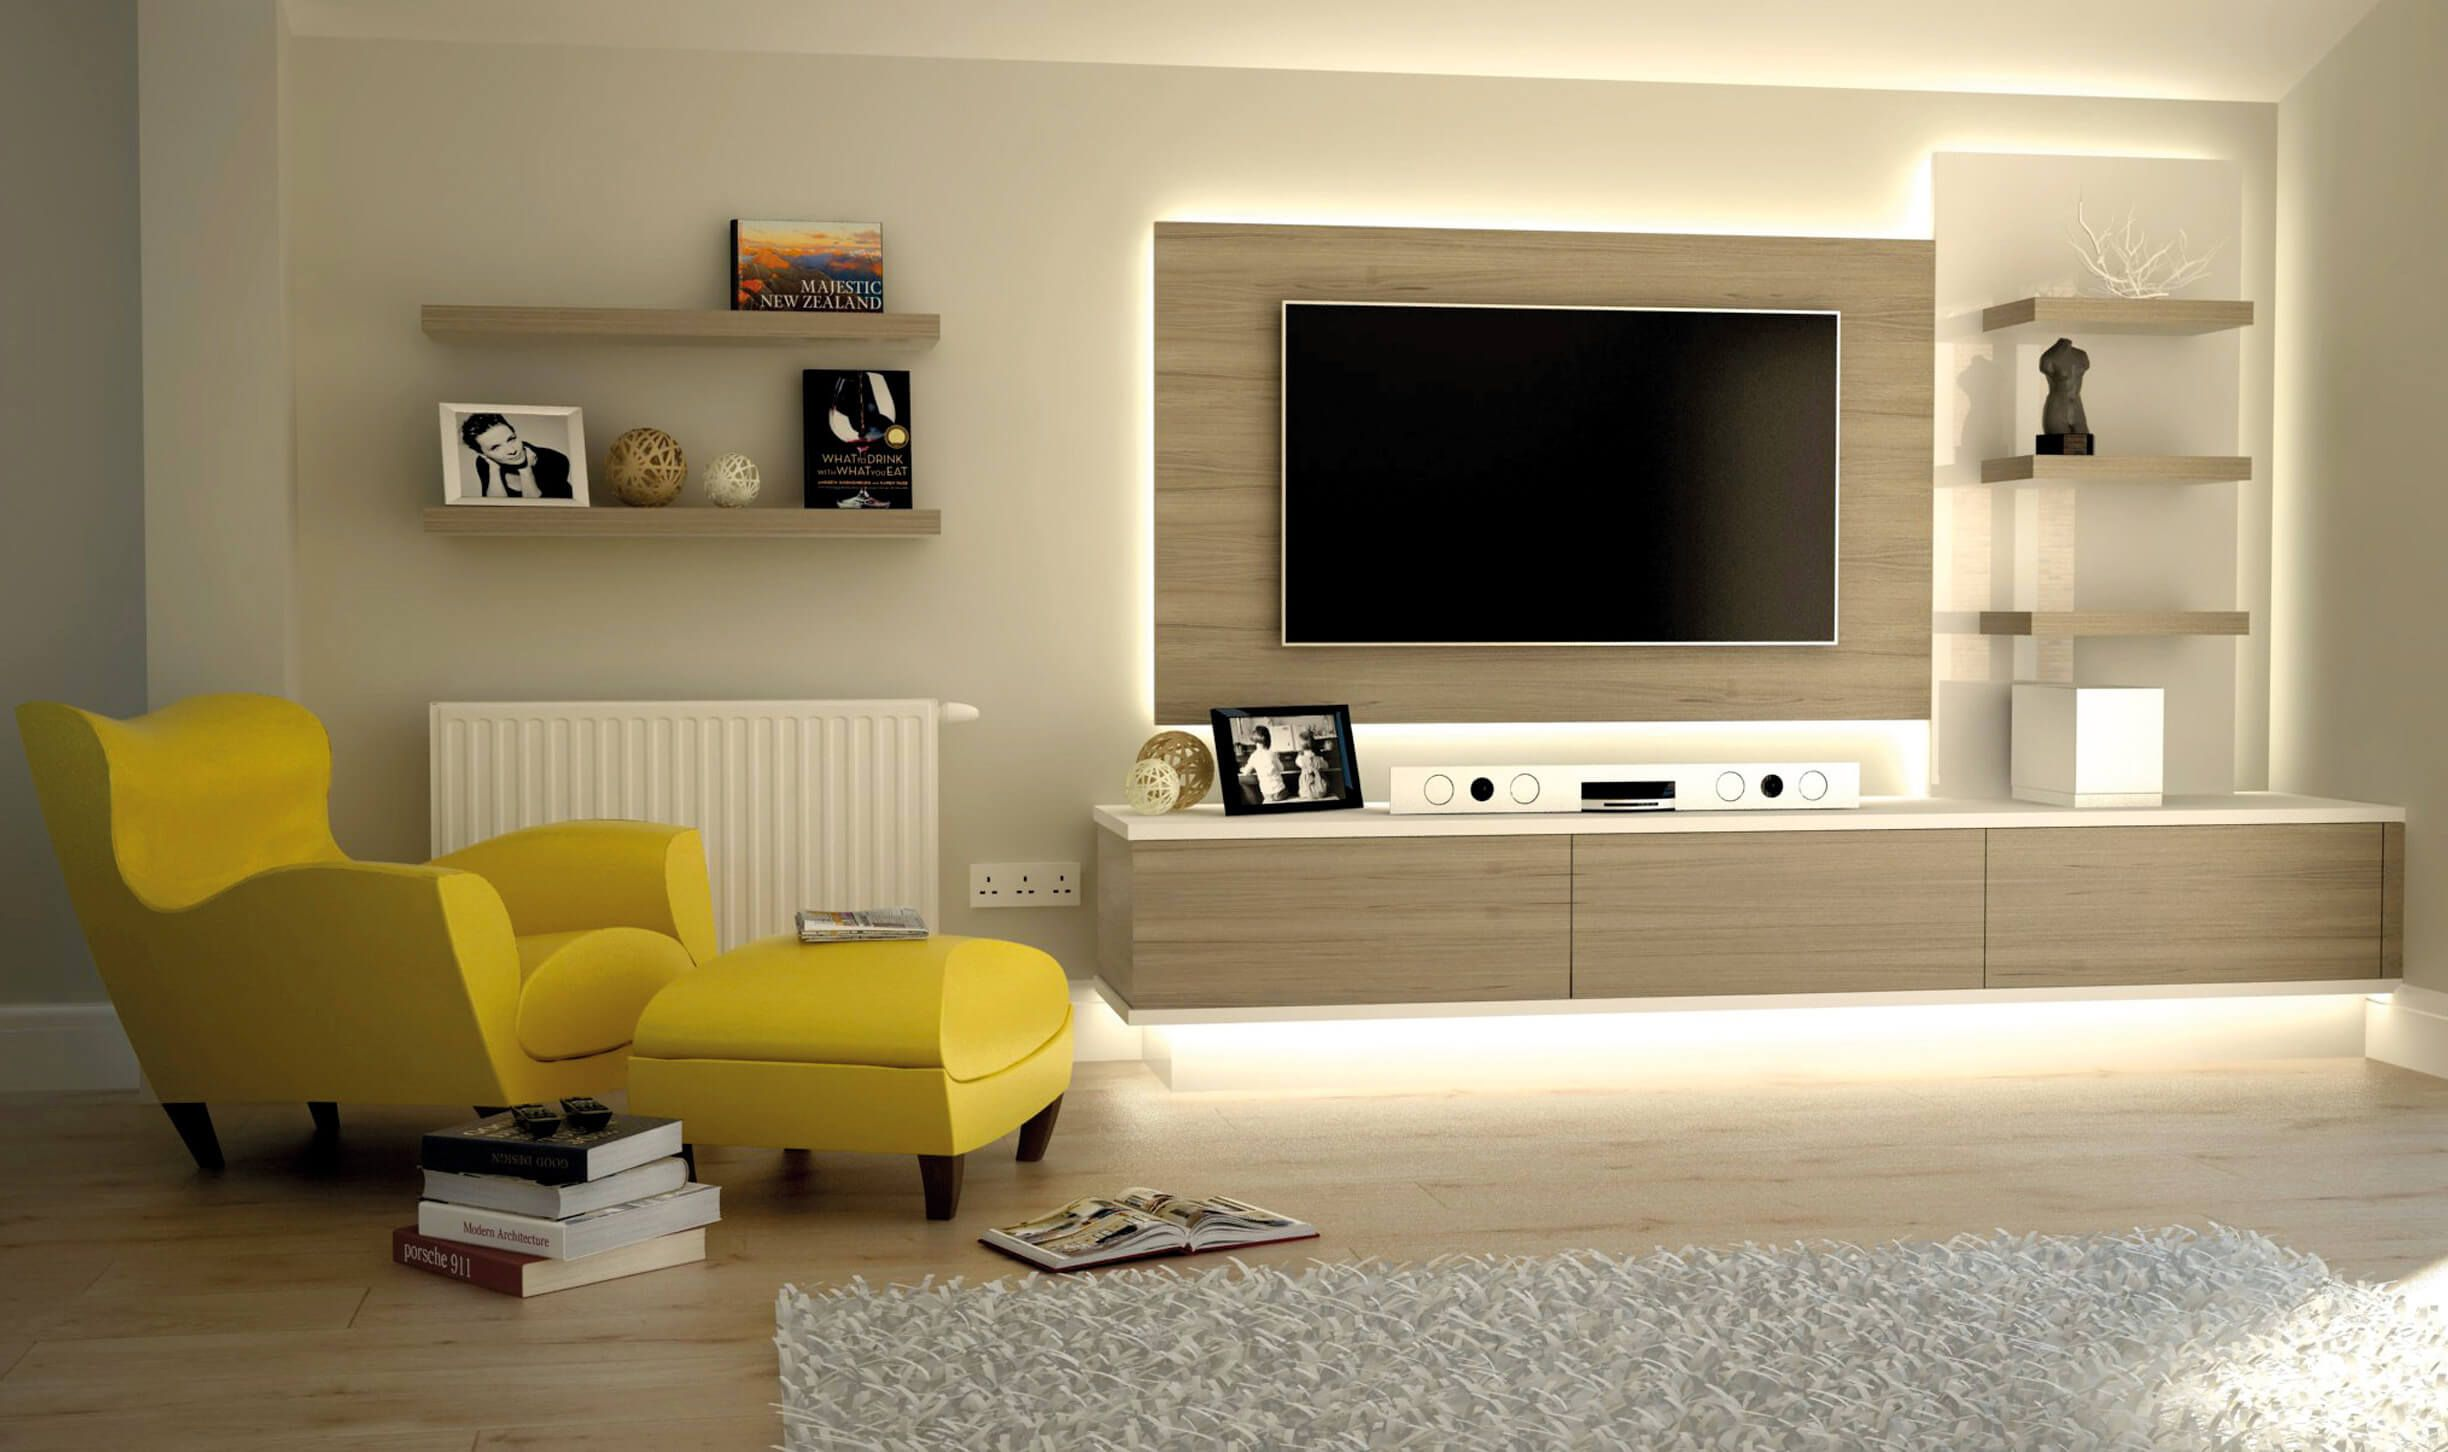 Bespoke tv cabinets bookcases and storage units for over - Small living room ideas with tv ...